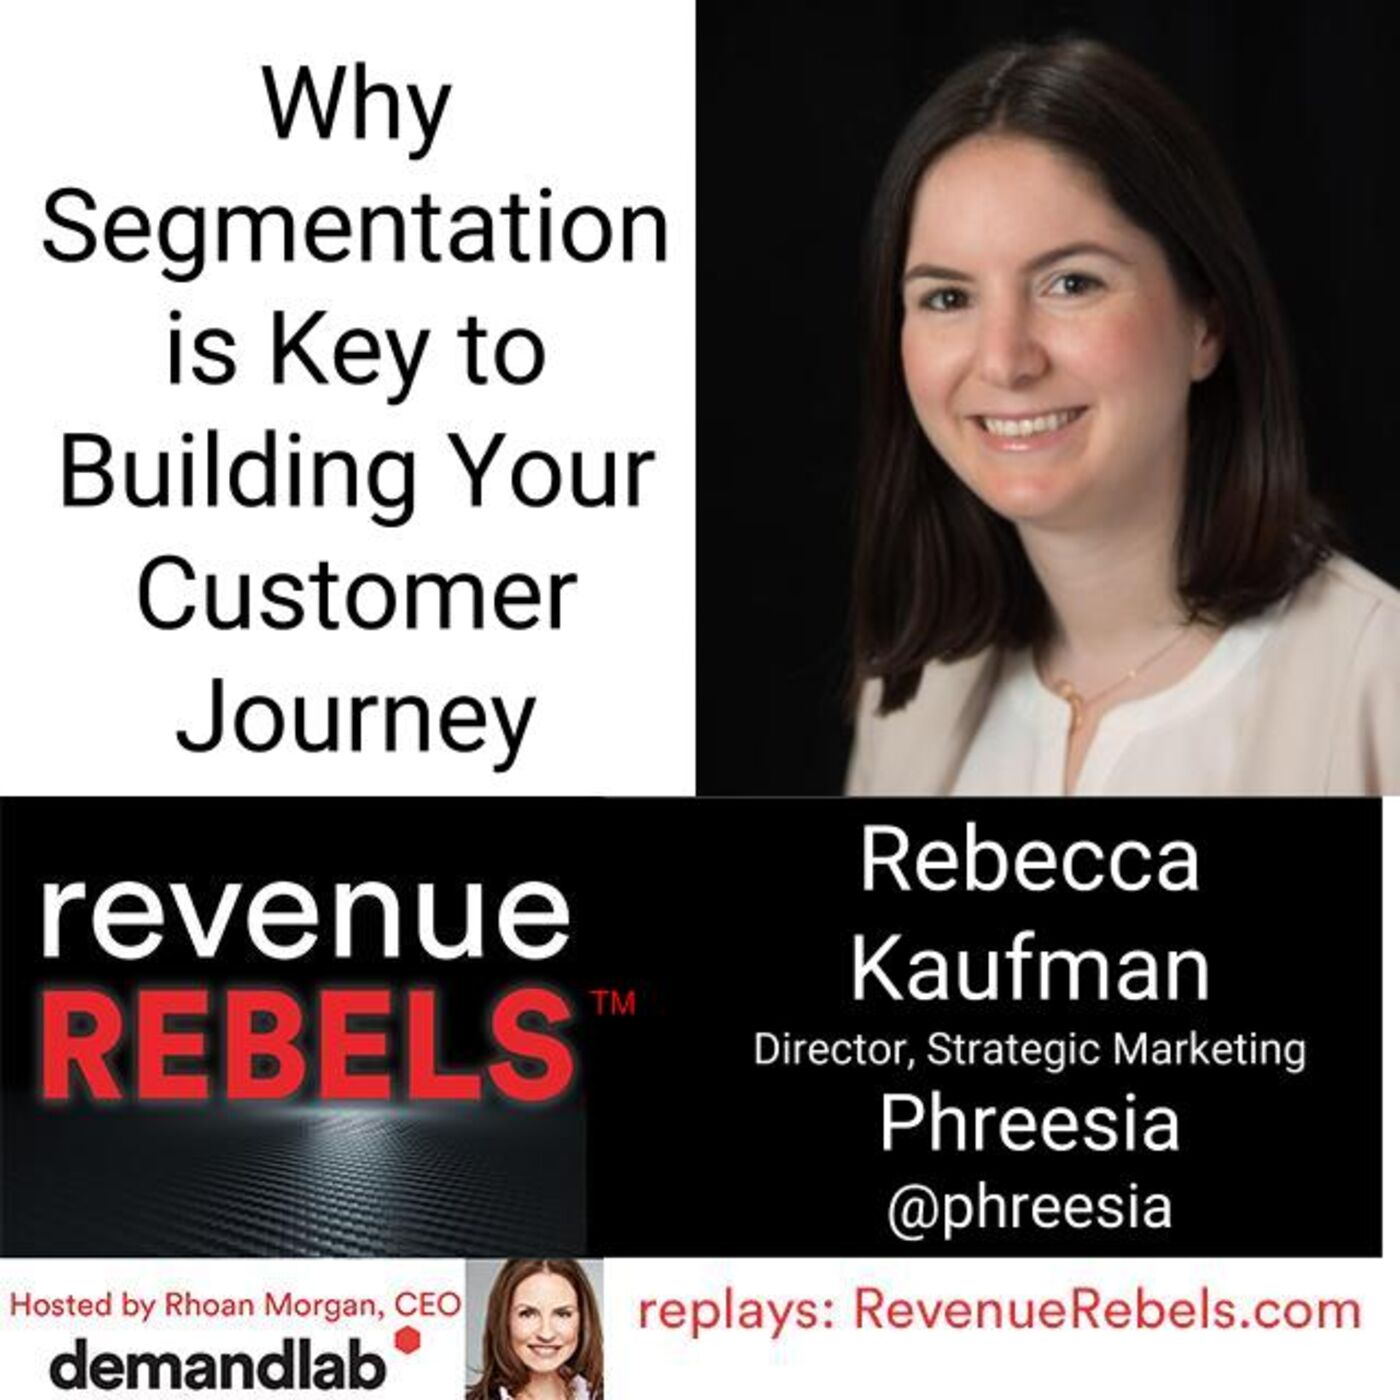 Why Segmentation is Key to Building Your Customer Journey